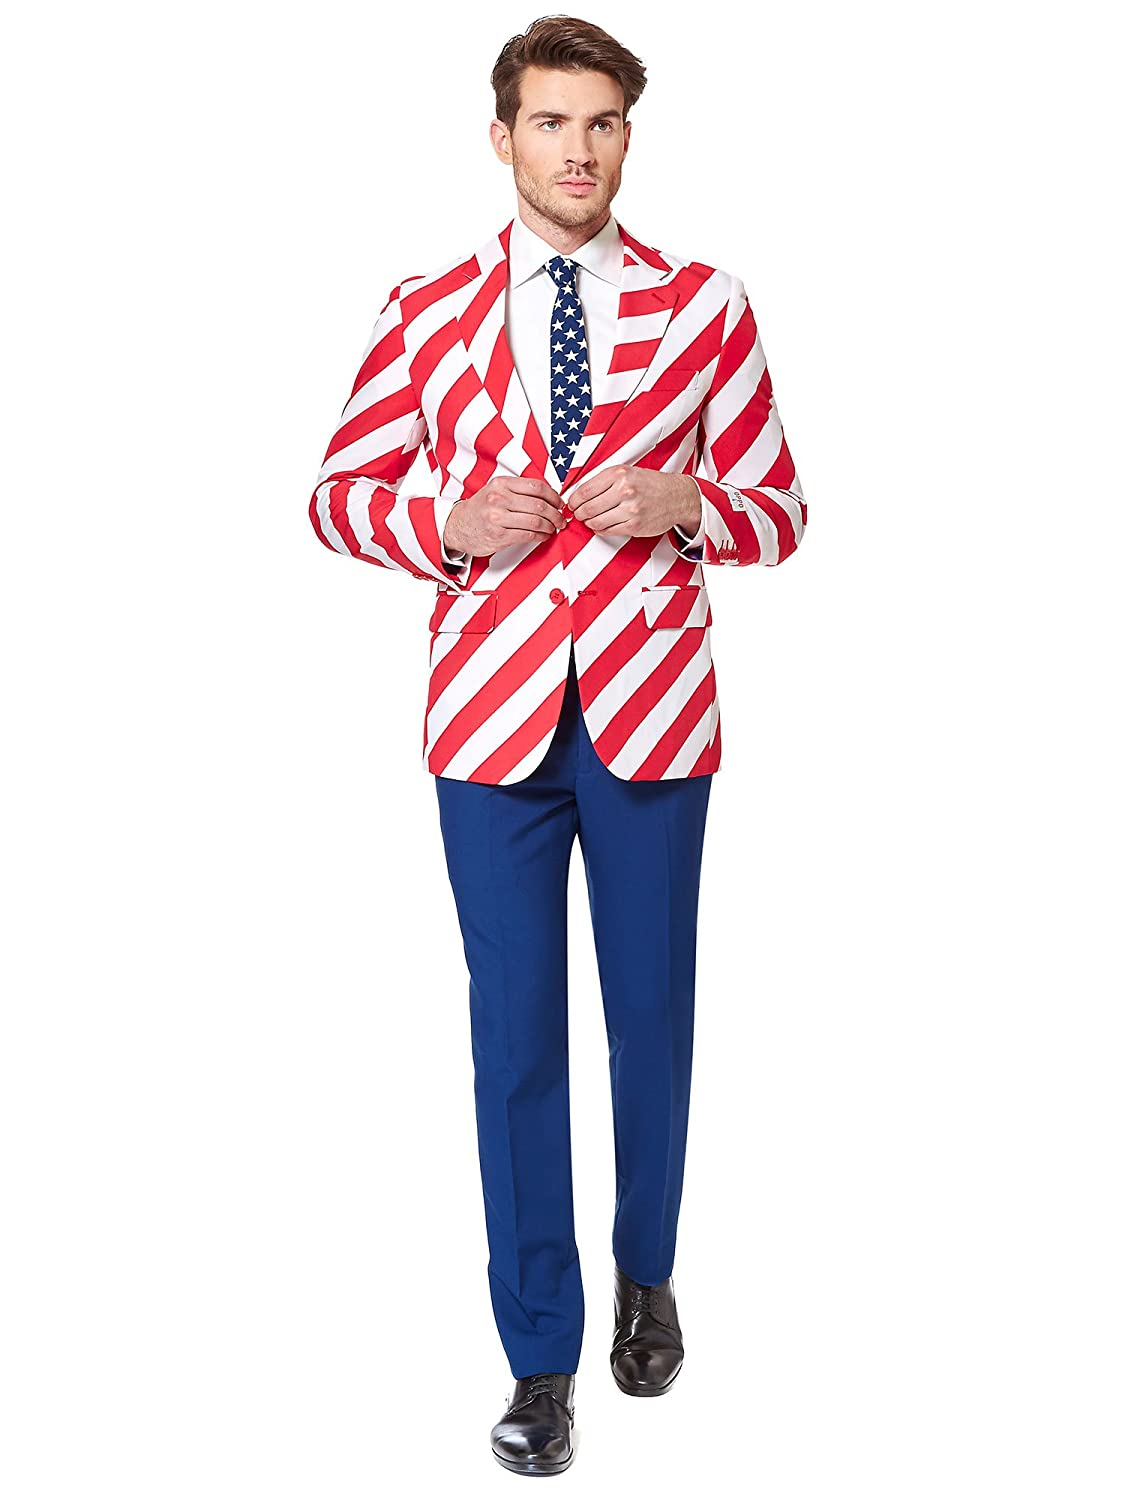 60s -70s  Men's Costumes : Hippie, Disco, Beatles Opposuits American Flag Suit for Men – USA Outfit for The 4th of July with Pants Jacket and Tie $93.99 AT vintagedancer.com